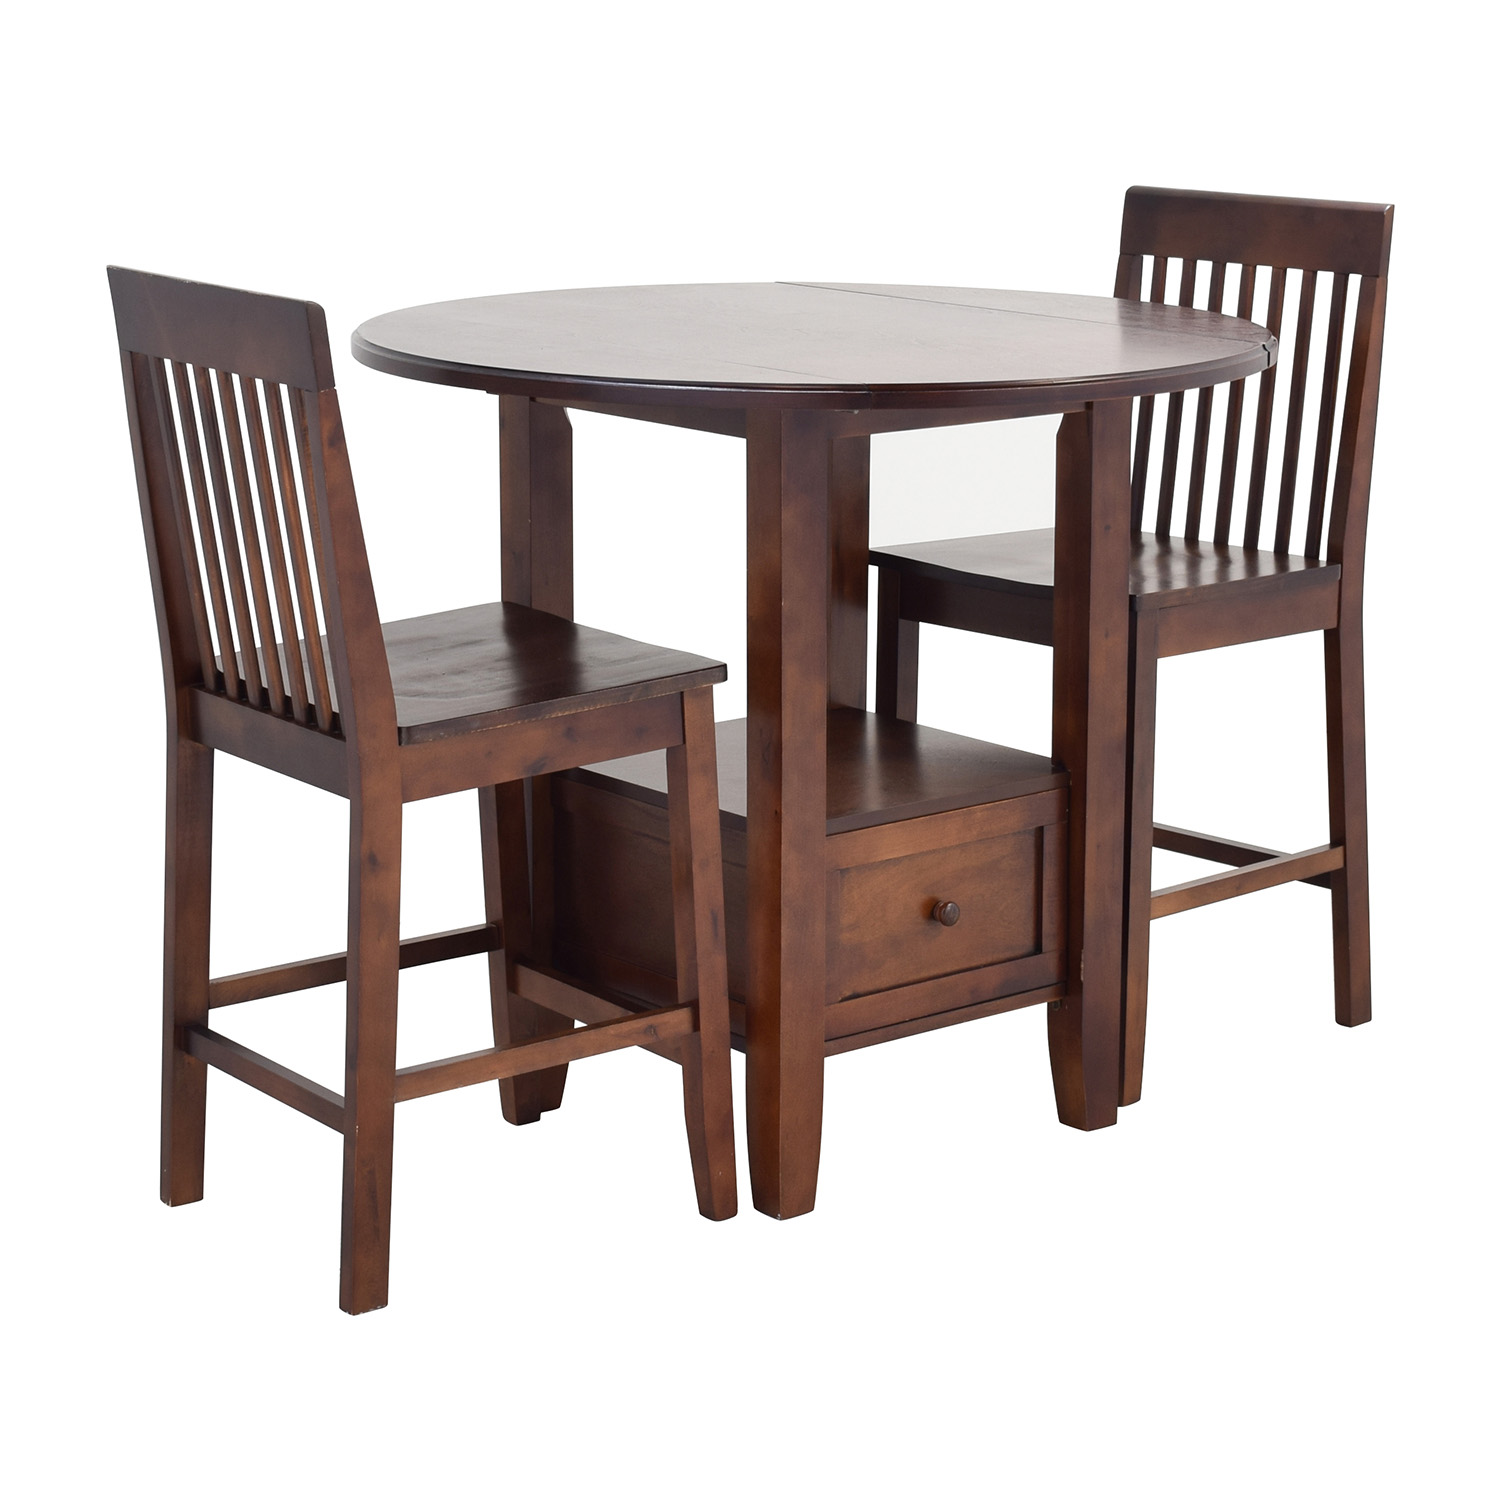 Used Table And Chairs 61 Off Threshold Threshold Pub Table Set Tables